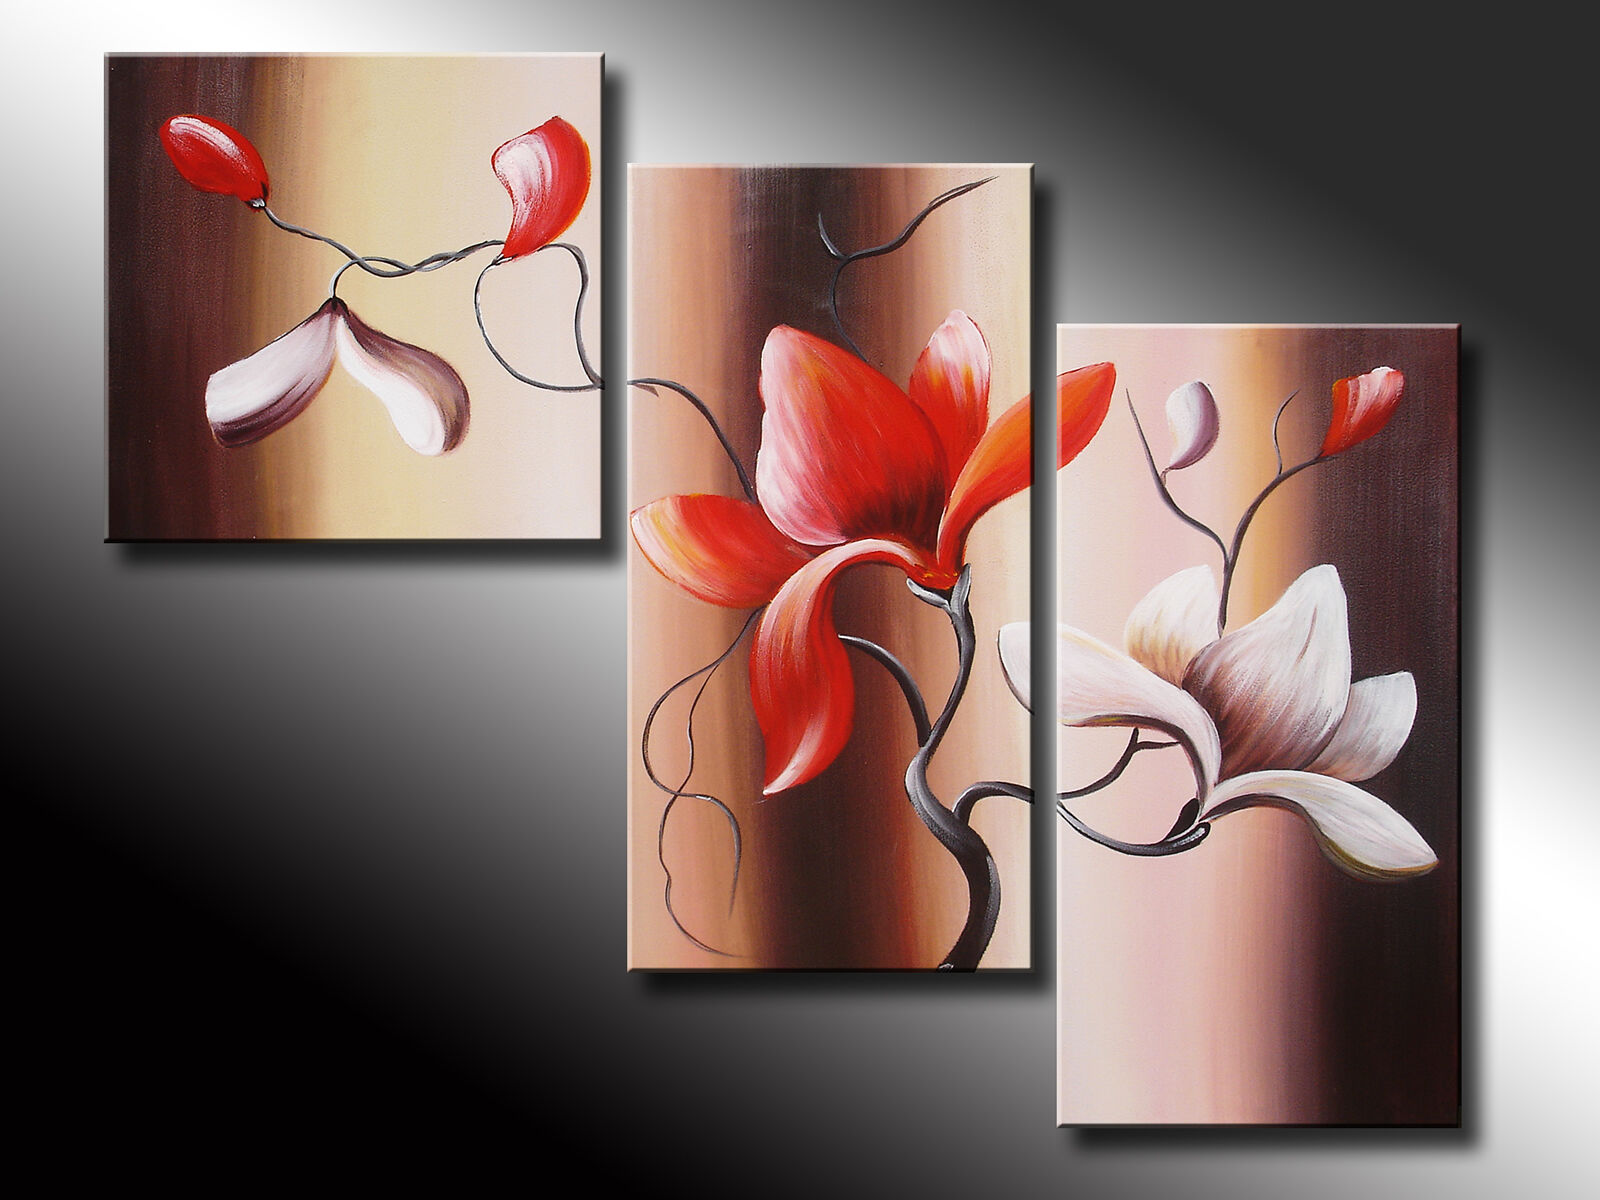 Wall Art Oil Painting : Modern abstract huge art oil painting wall decor piece